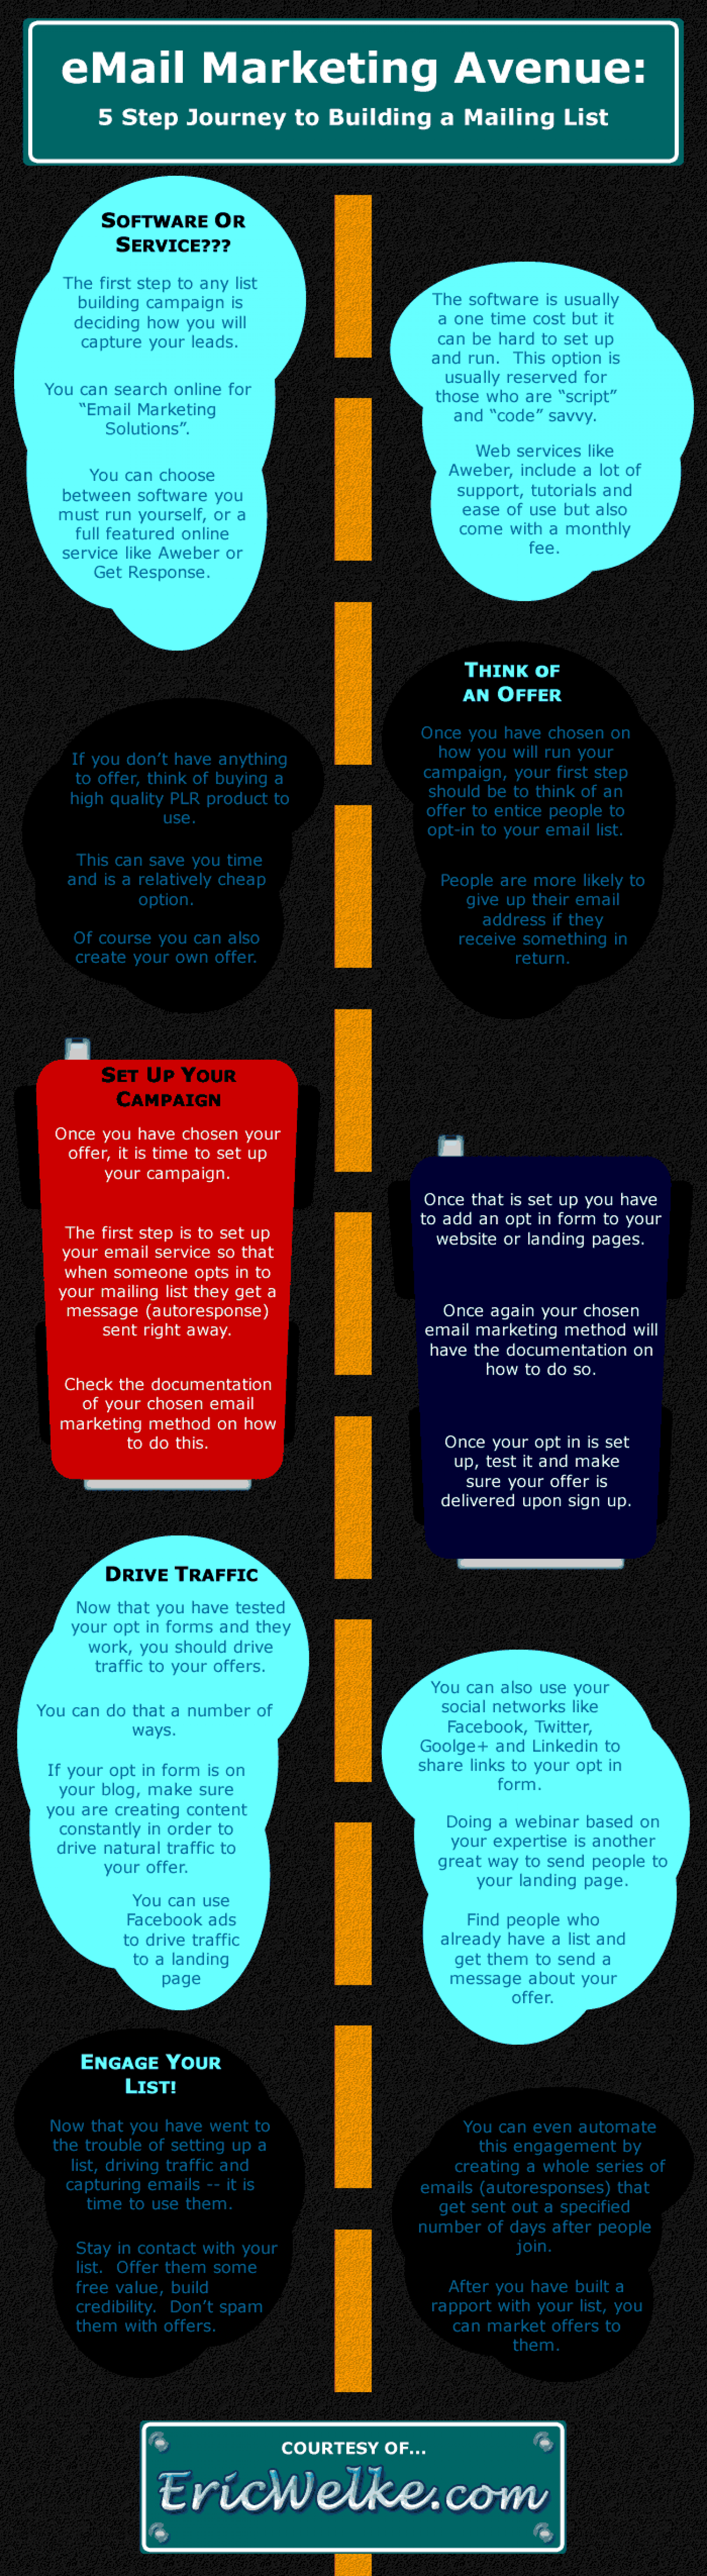 Email Marketing – 5 Steps to Building a Successful Mailing List [Infographic] Infographic